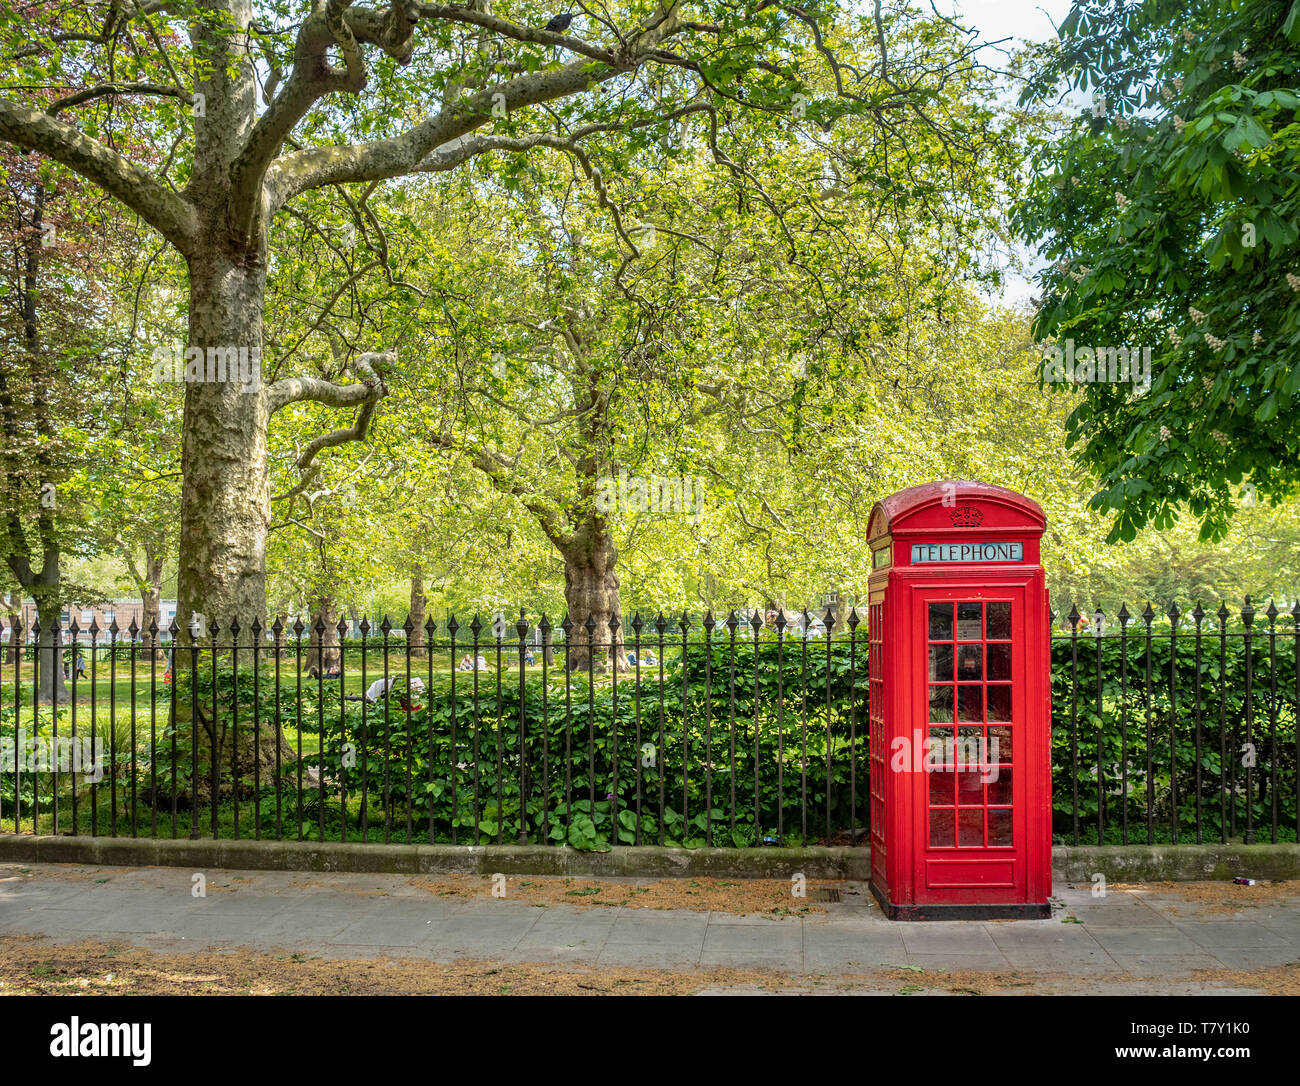 Red telephone box at Brunswick Square Gardens, Camden, London. - Stock Image